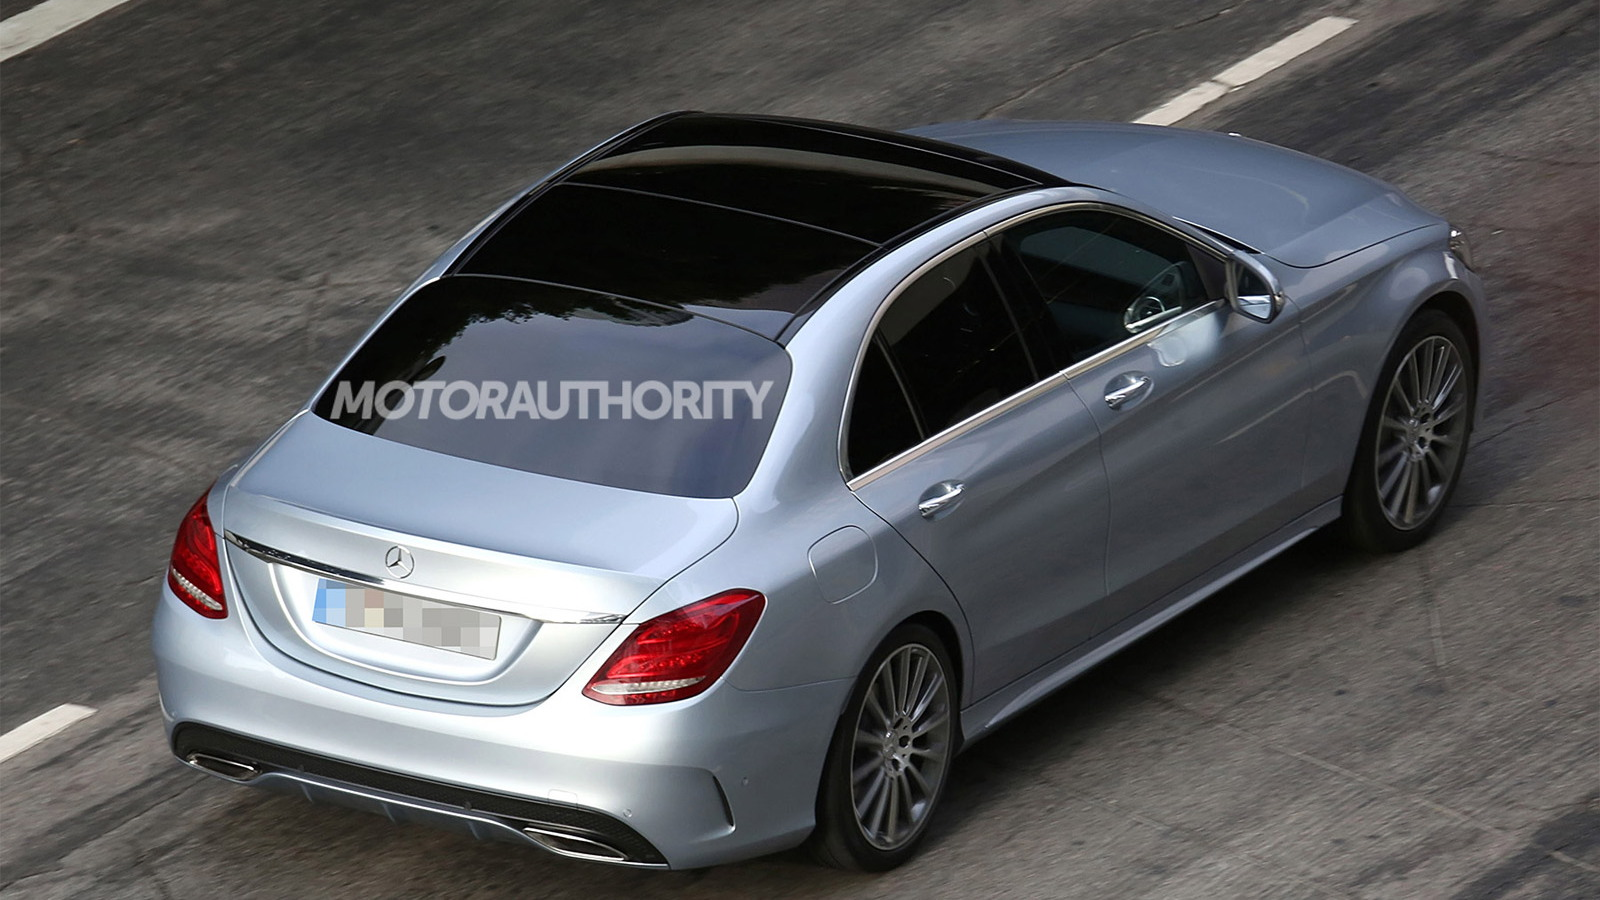 2015 Mercedes-Benz C-Class spy shots